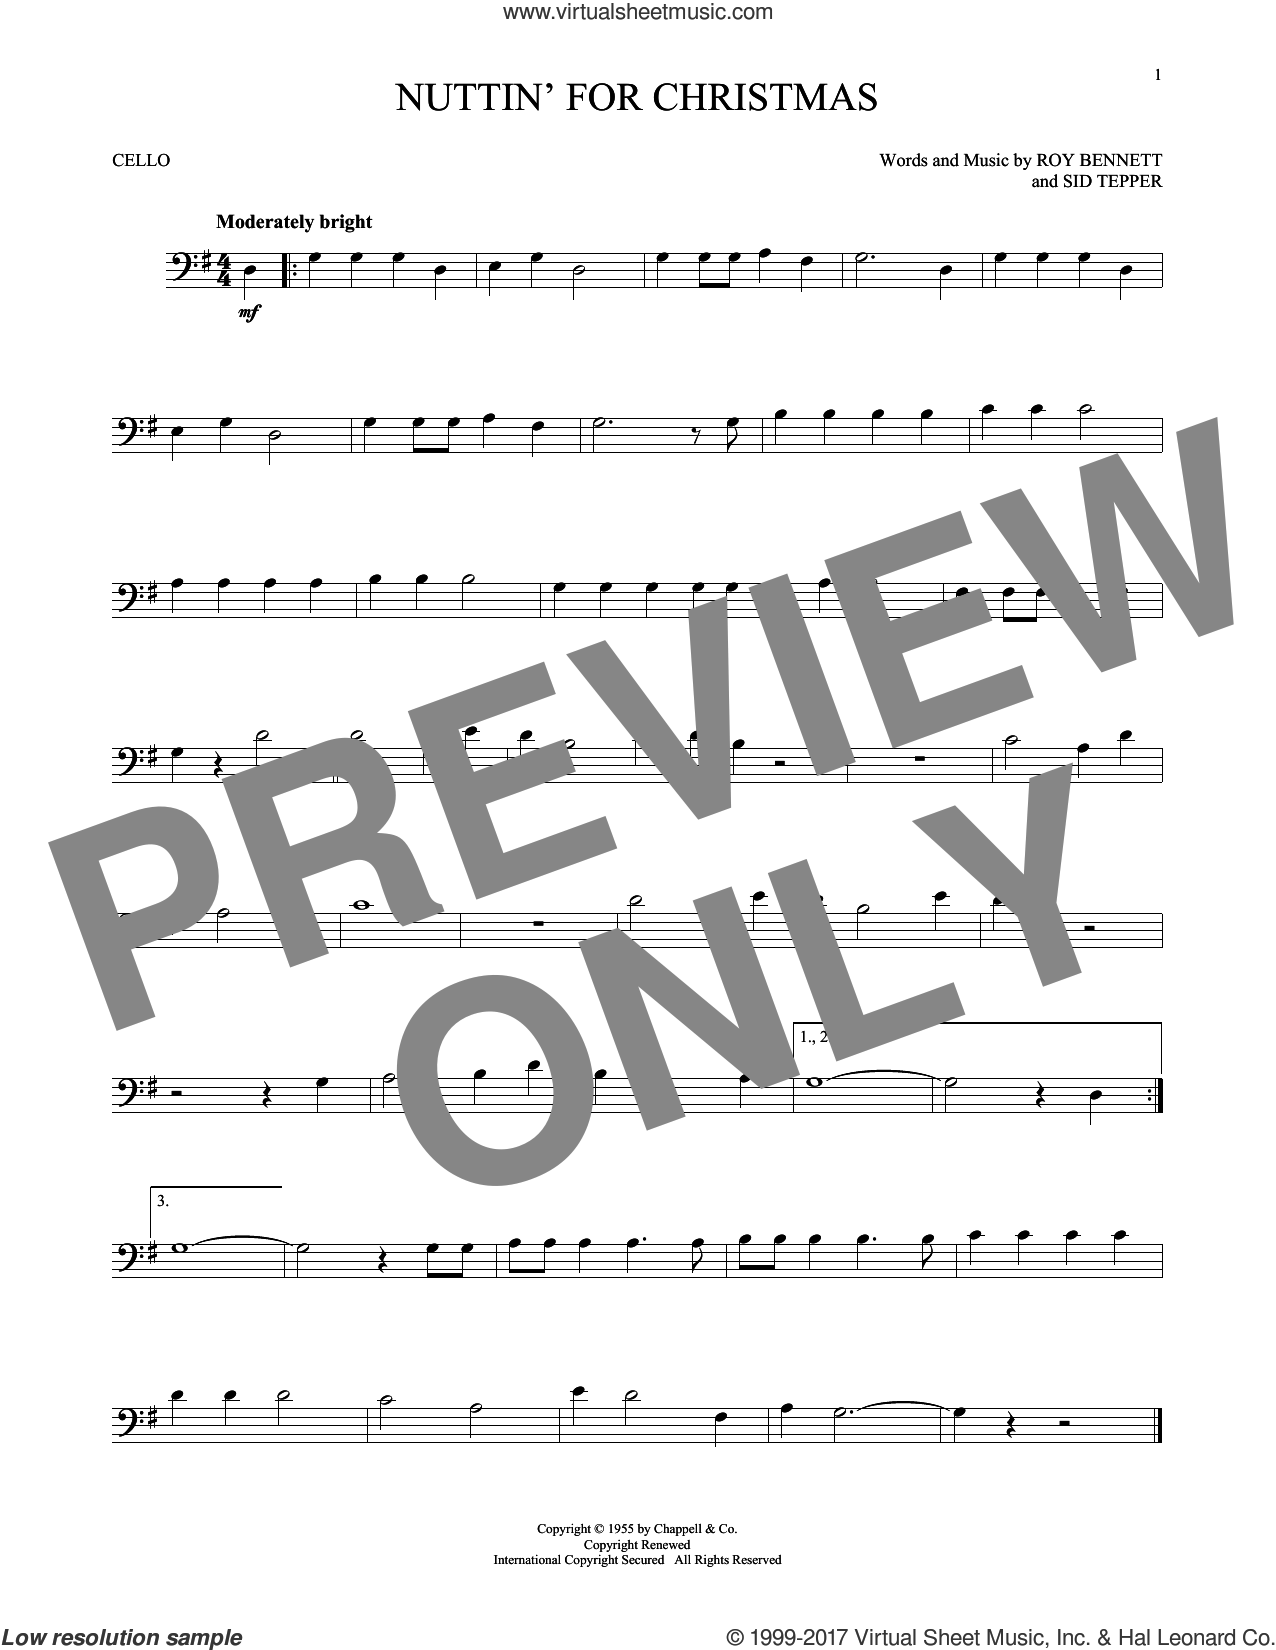 Nuttin' For Christmas sheet music for cello solo by Roy Bennett and Sid Tepper, intermediate skill level